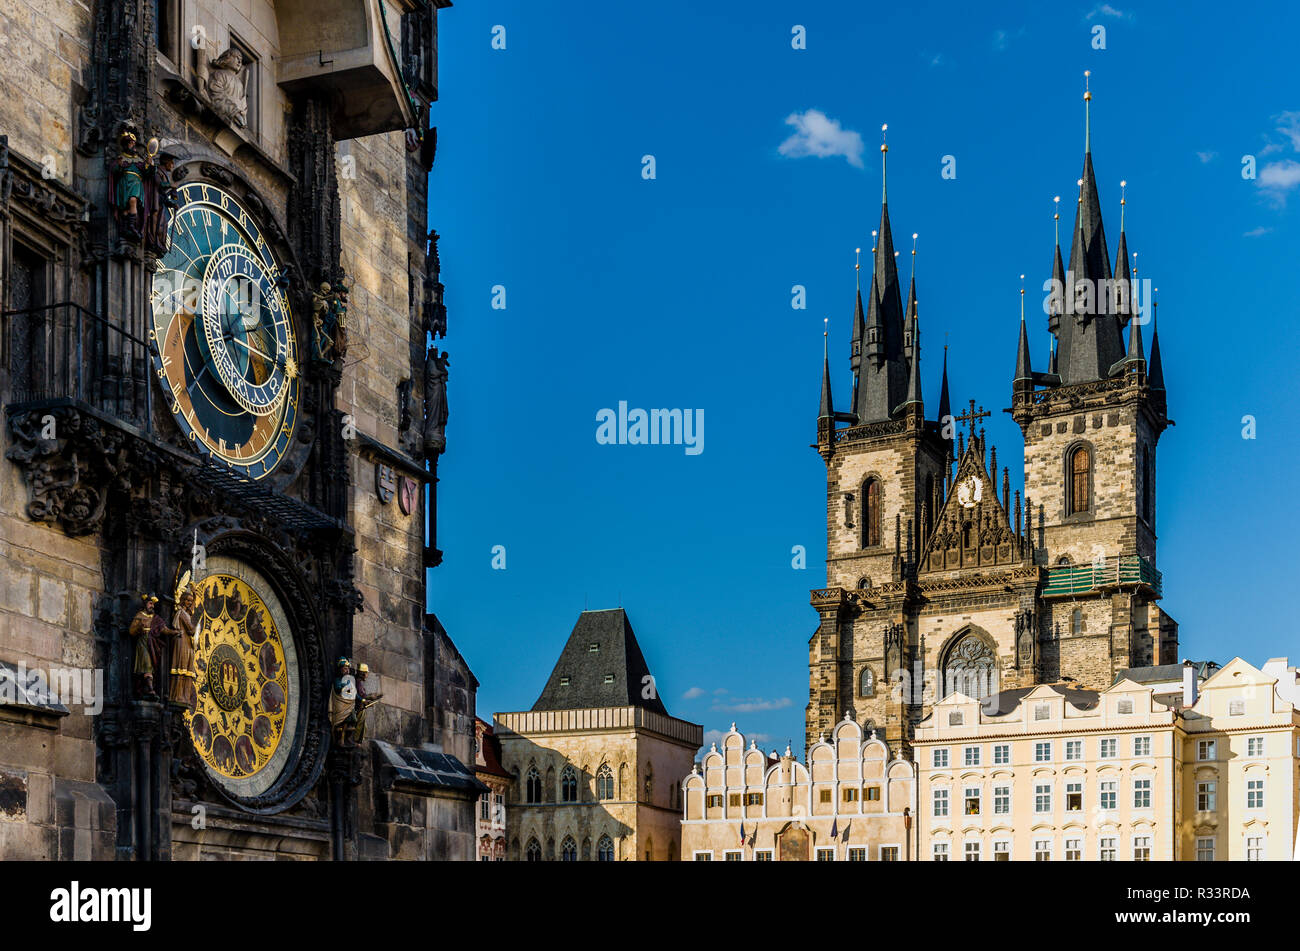 """Prazsky orloj"", the astronomical clock of Prague's town hall, with the towers of ""Tynsky chram"", the Tyn Church, in the background Stock Photo"